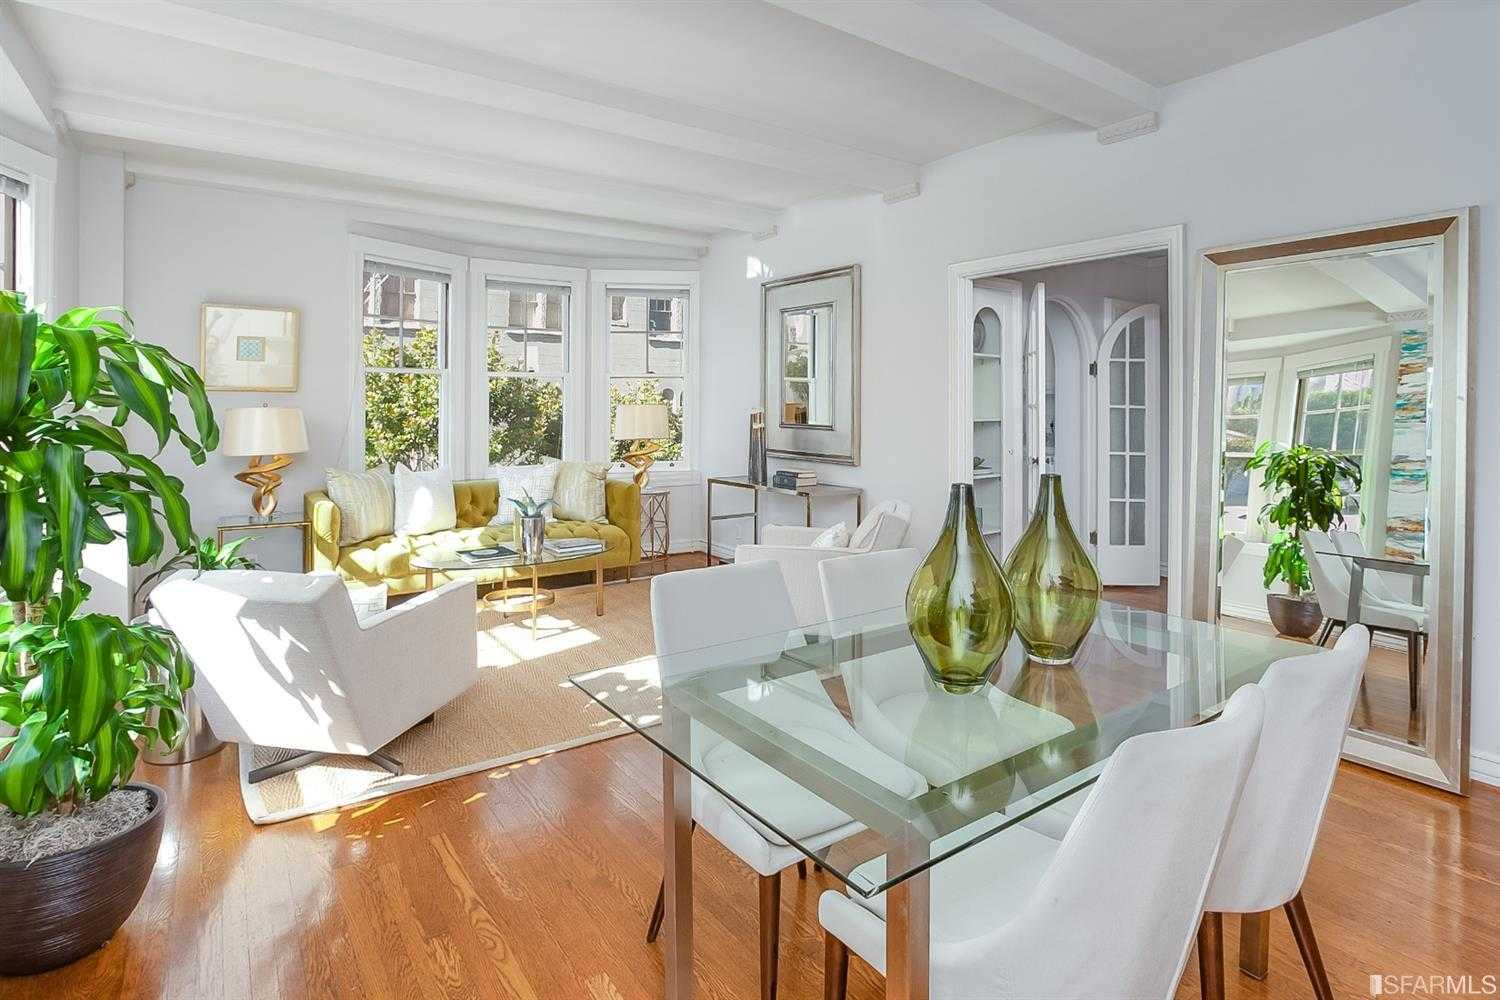 $1,395,000 - 1Br/1Ba -  for Sale in San Francisco